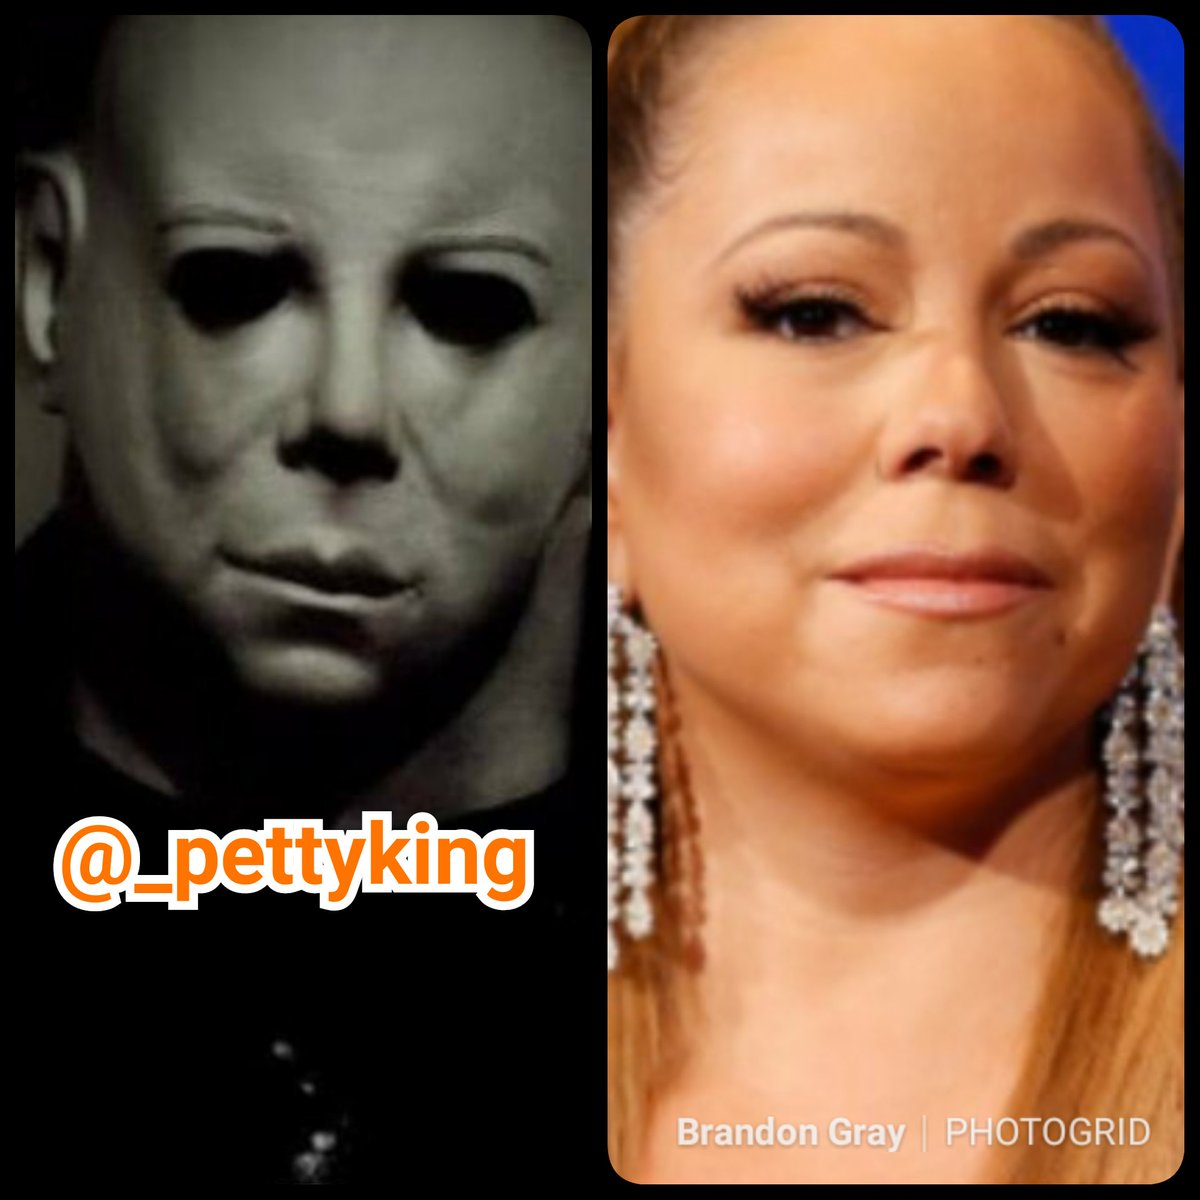 Petty King On Twitter I Know Yall Excited Bout Halloween But Can Yall Please Stop Saying Michael Myers Look Like Mariah Carey Gtfo Mariahcarey Amas Gtfo Michaelmyersmonday Michaelmyers Halloweenmovie Halloween2018 Withyou